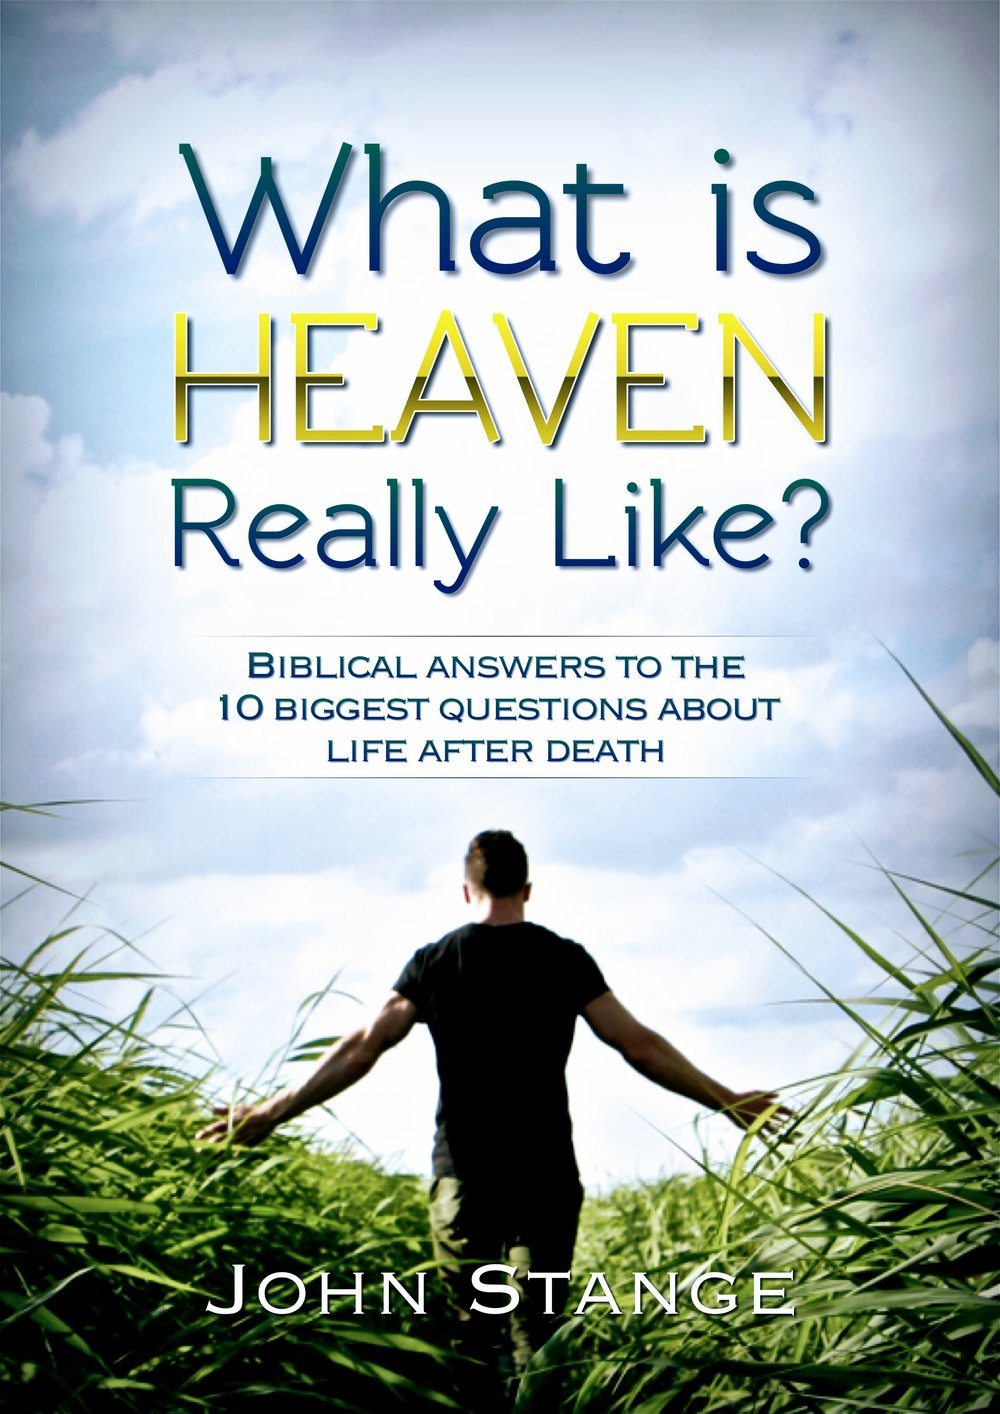 What is Heaven Really Like?